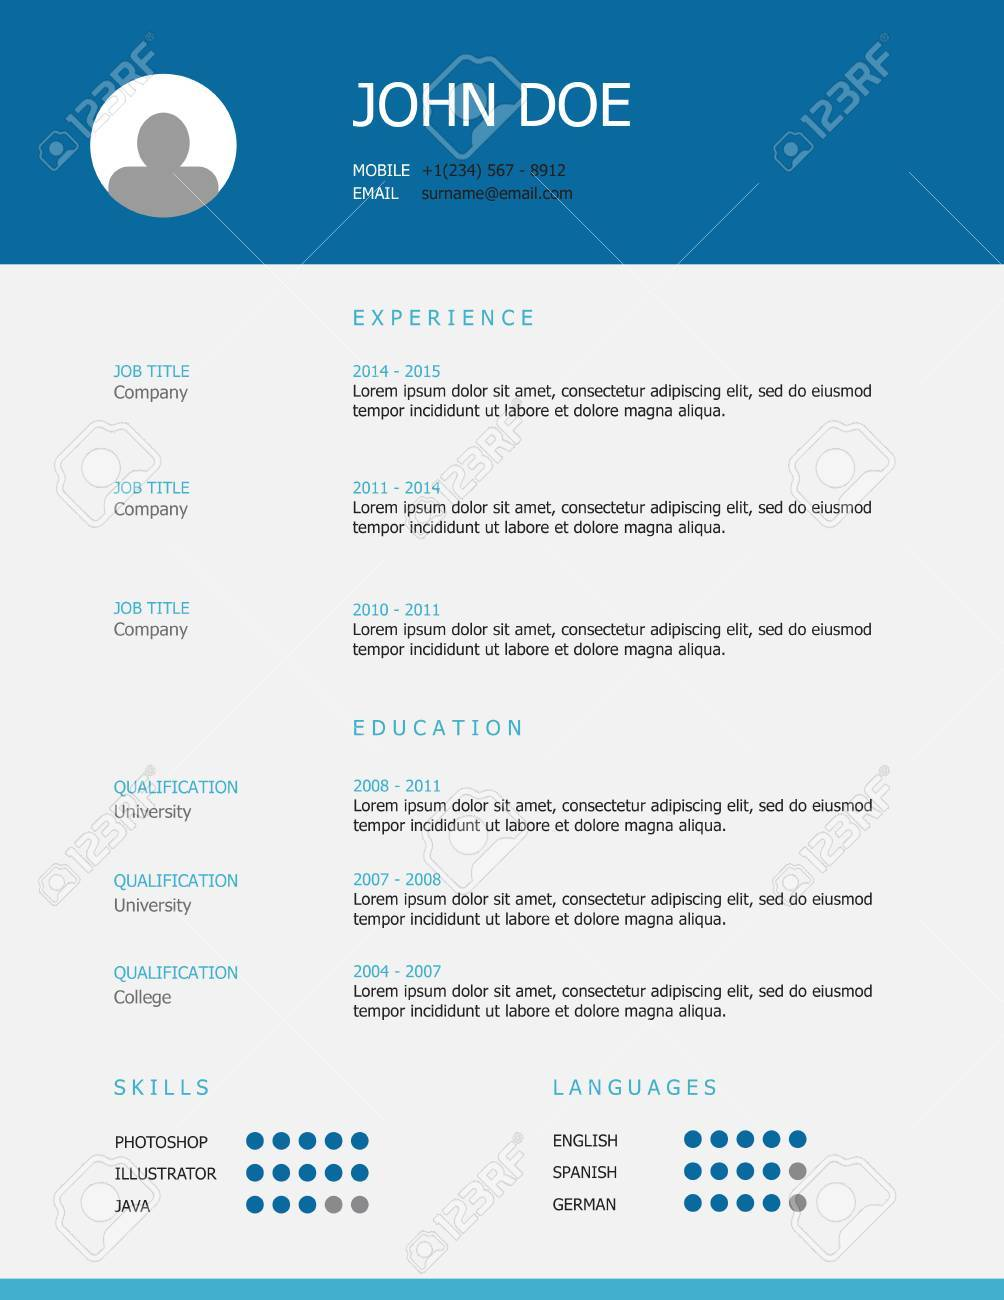 Professional Simple Styled Resume Template Design With Blue And